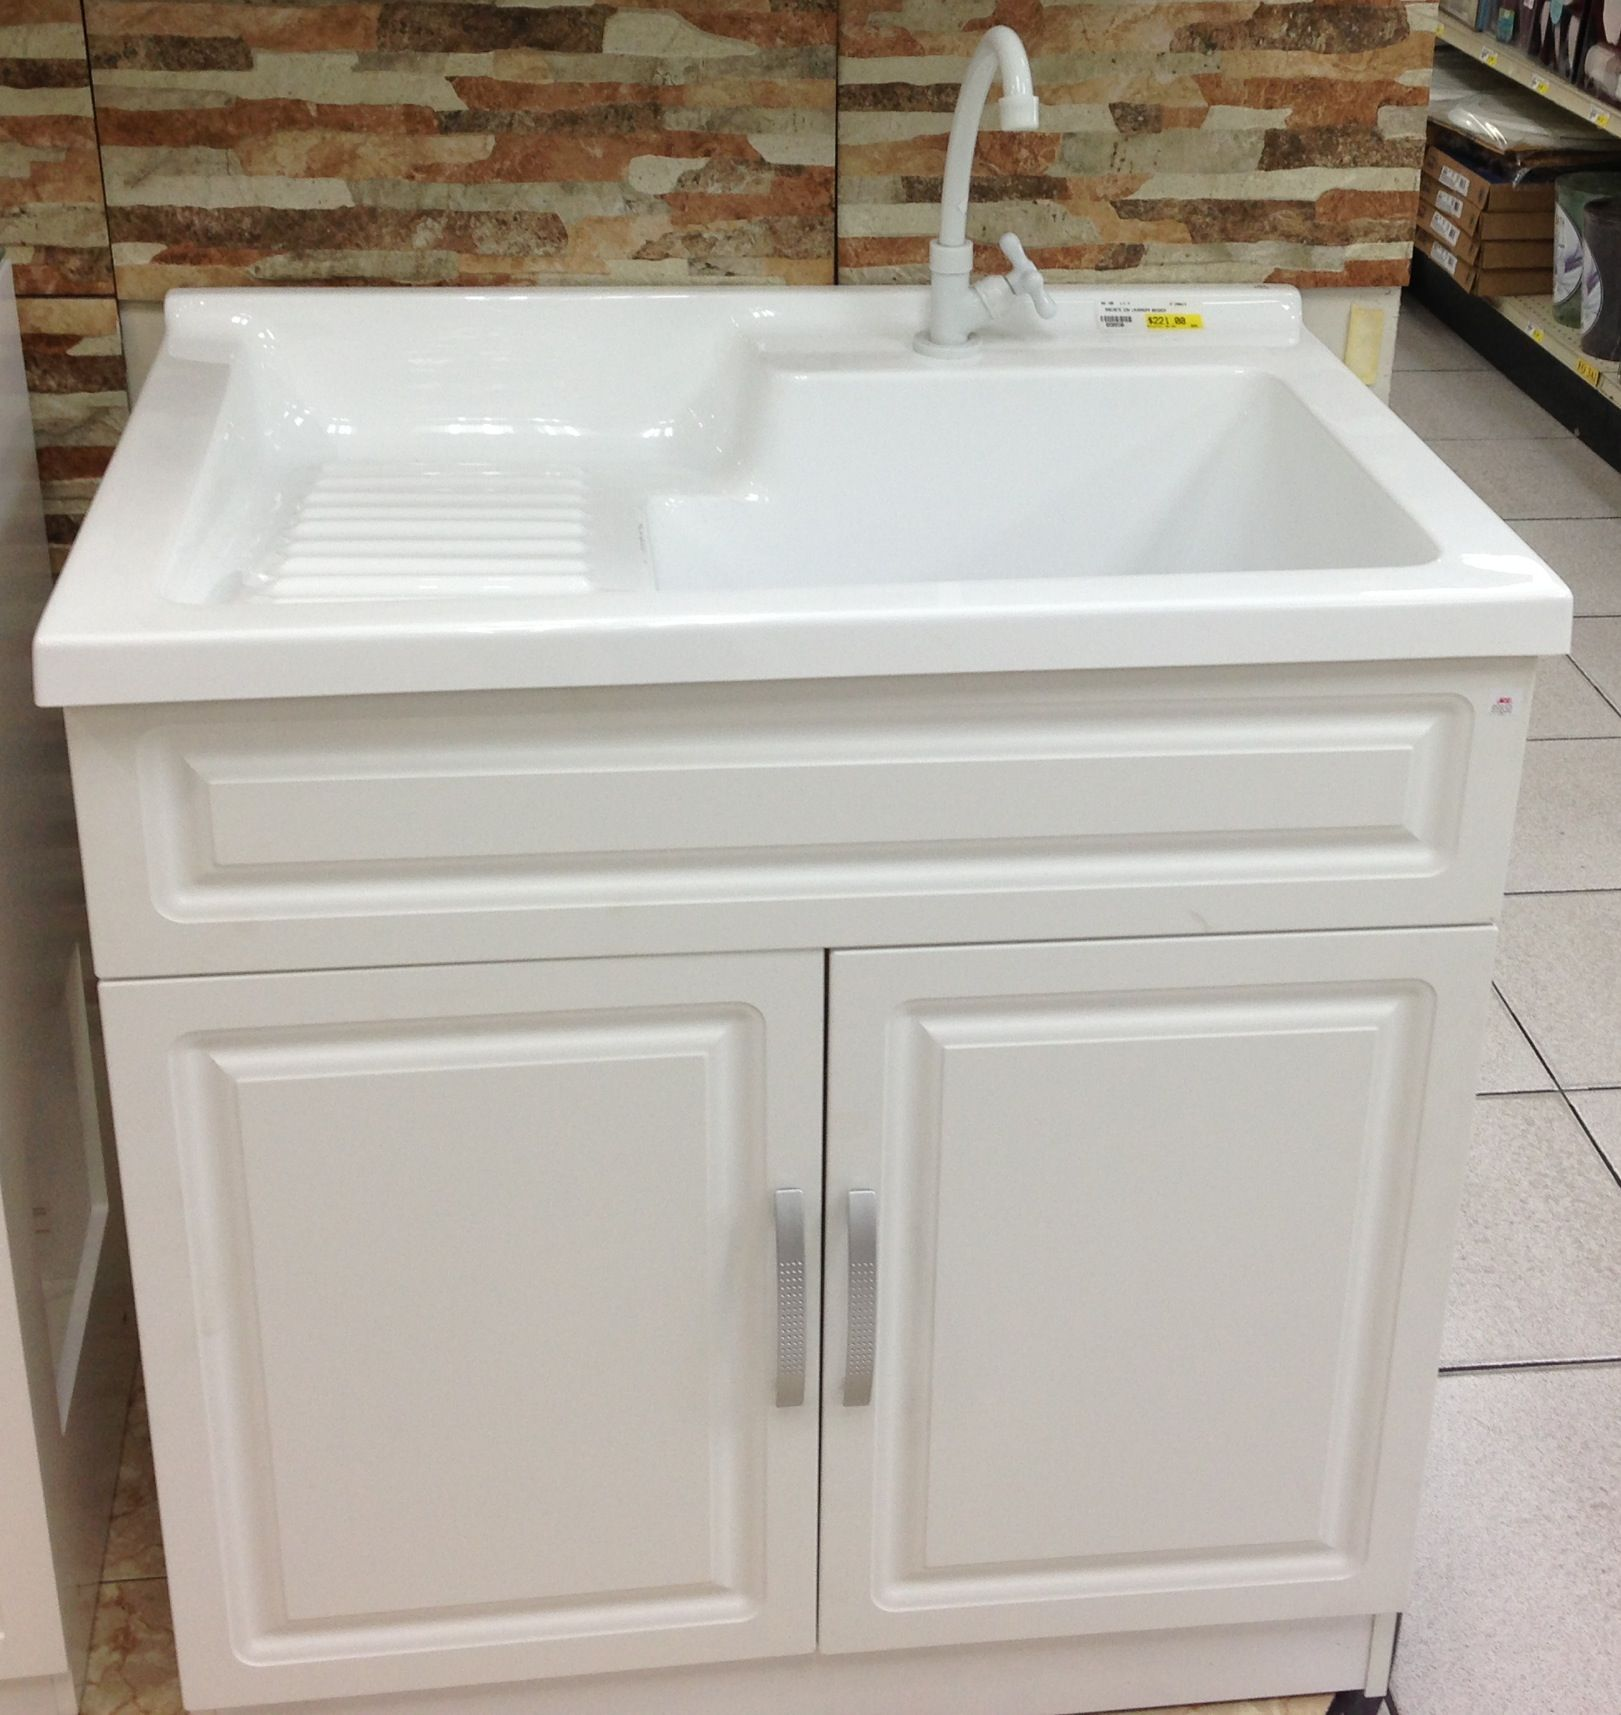 Functional Laundry Sink. Corstone Self Rimming at Lowes for $145 & Functional Laundry Sink. Corstone Self Rimming at Lowes for $145 ...